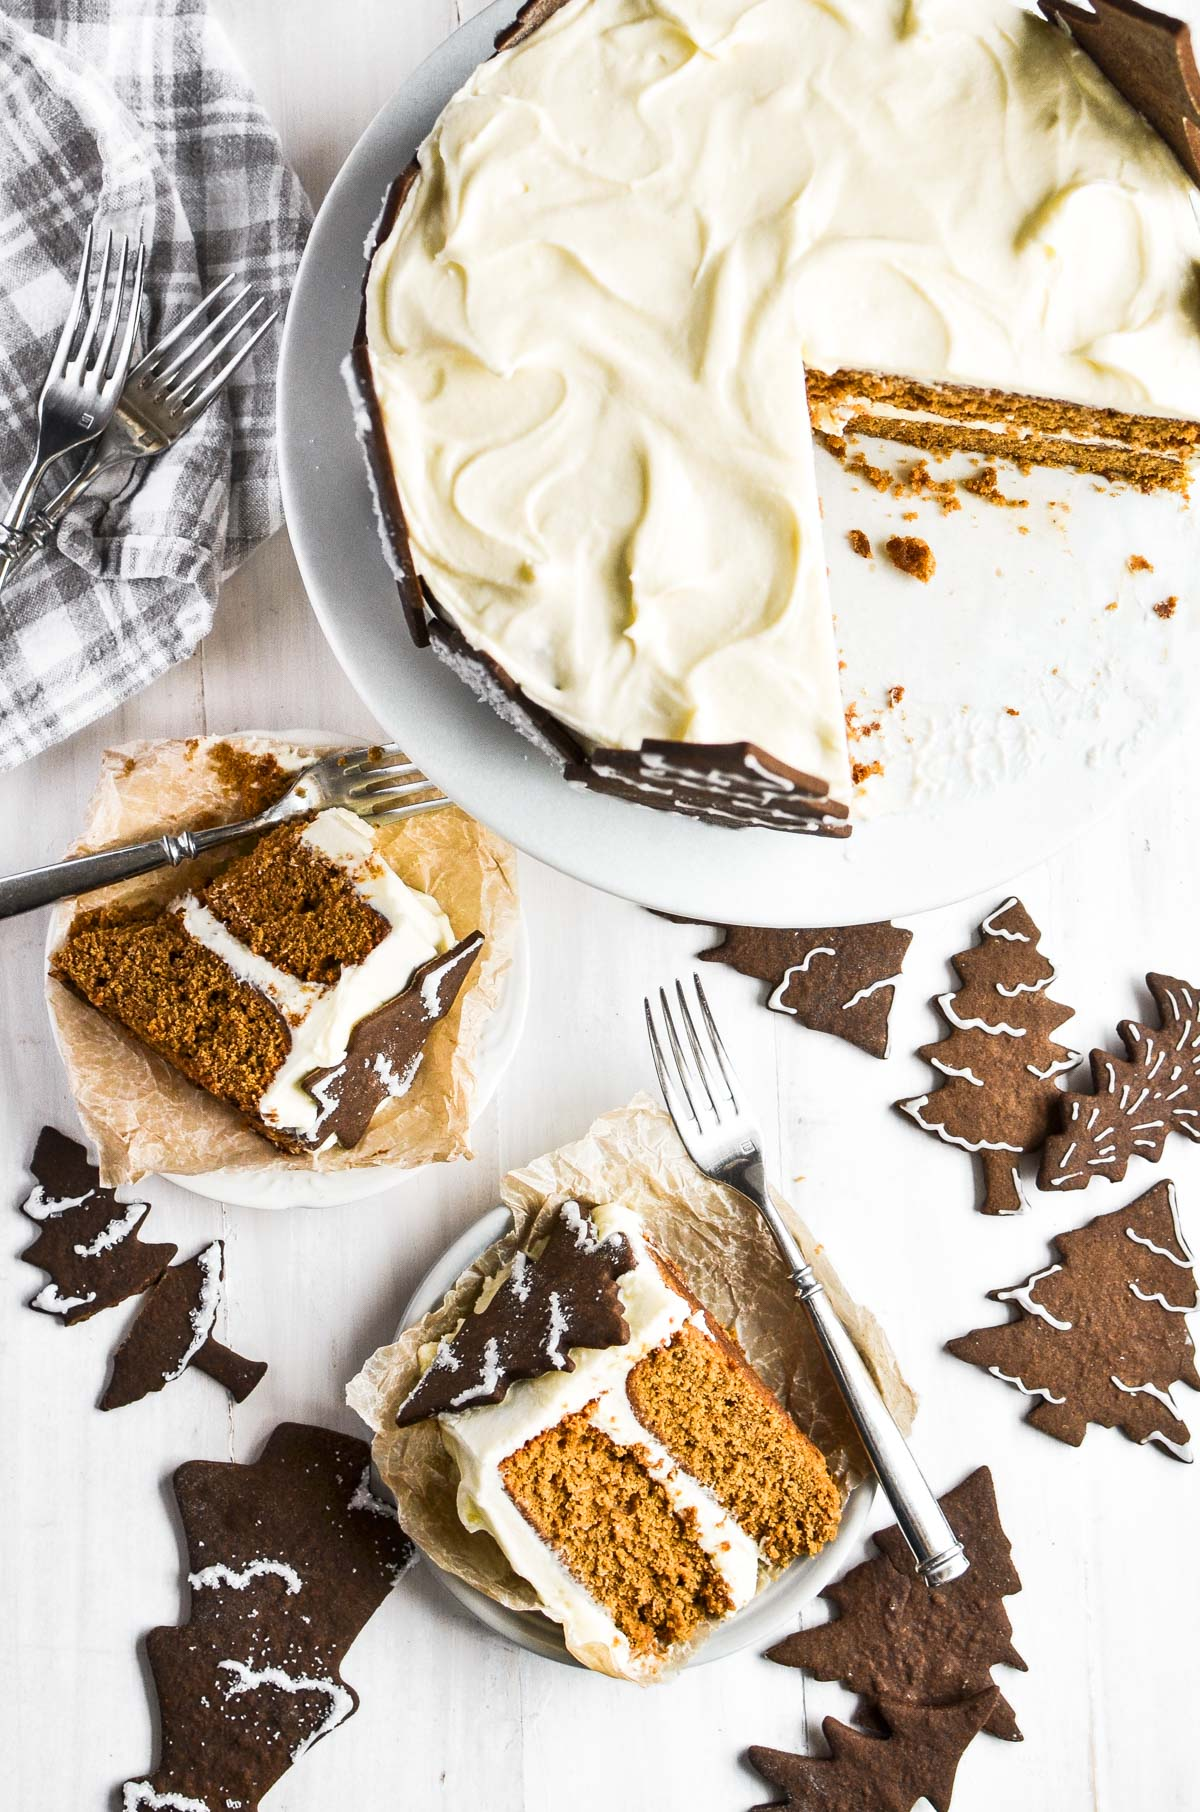 gingerbread layer cake with slices of cake on plates